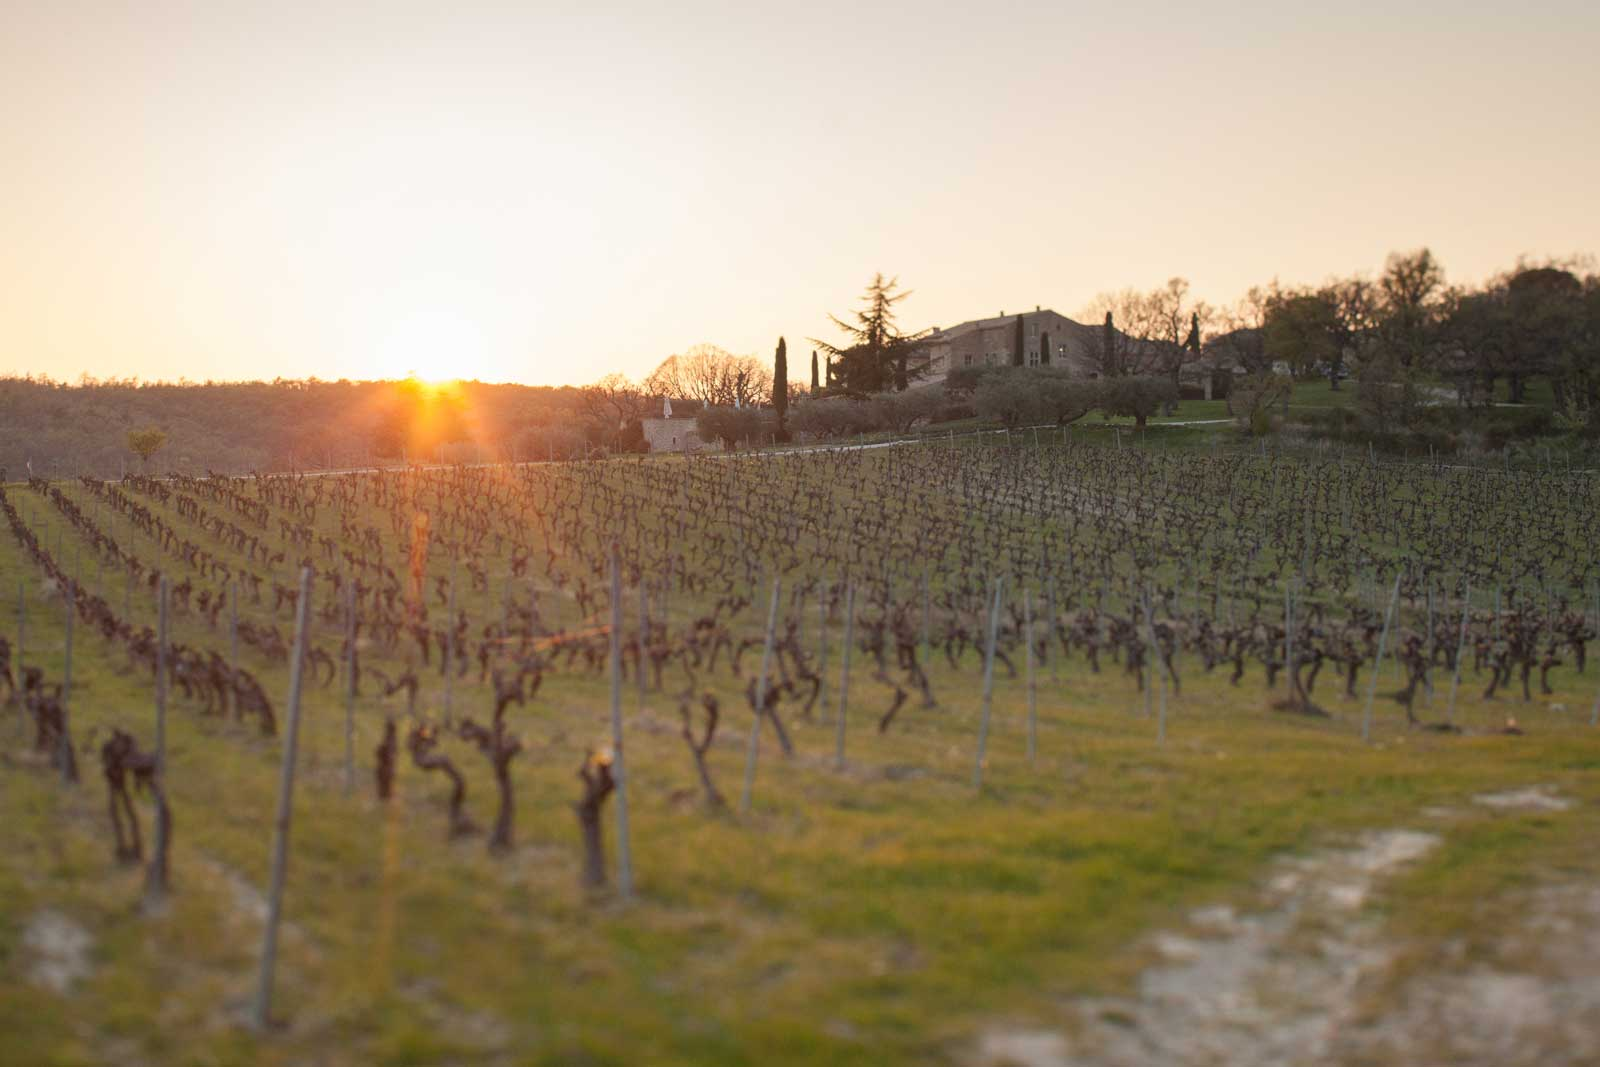 Sunset at Chêne Bleu, with La Verrière in the distance. ©Kevin Day / Opening a Bottle